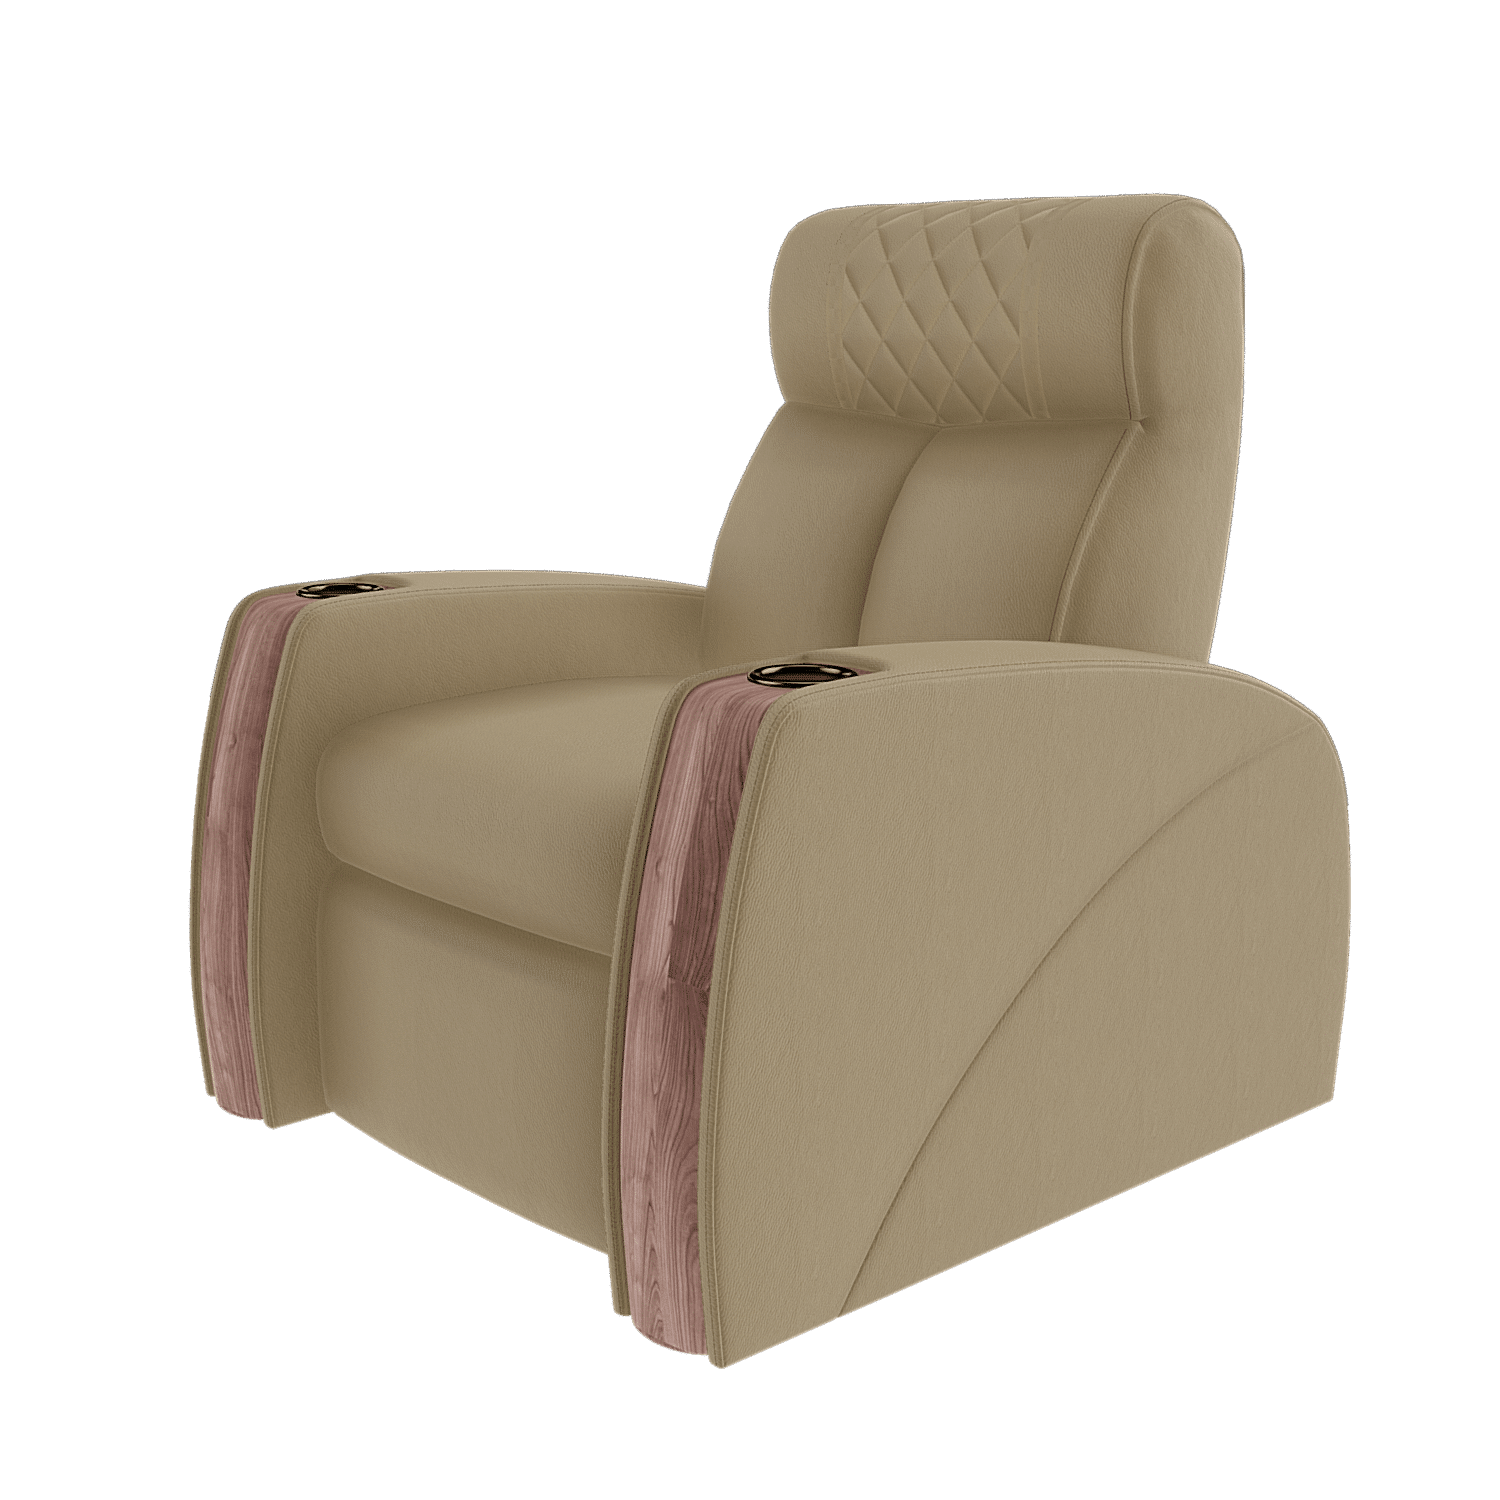 home_cinema_recliner chair j9